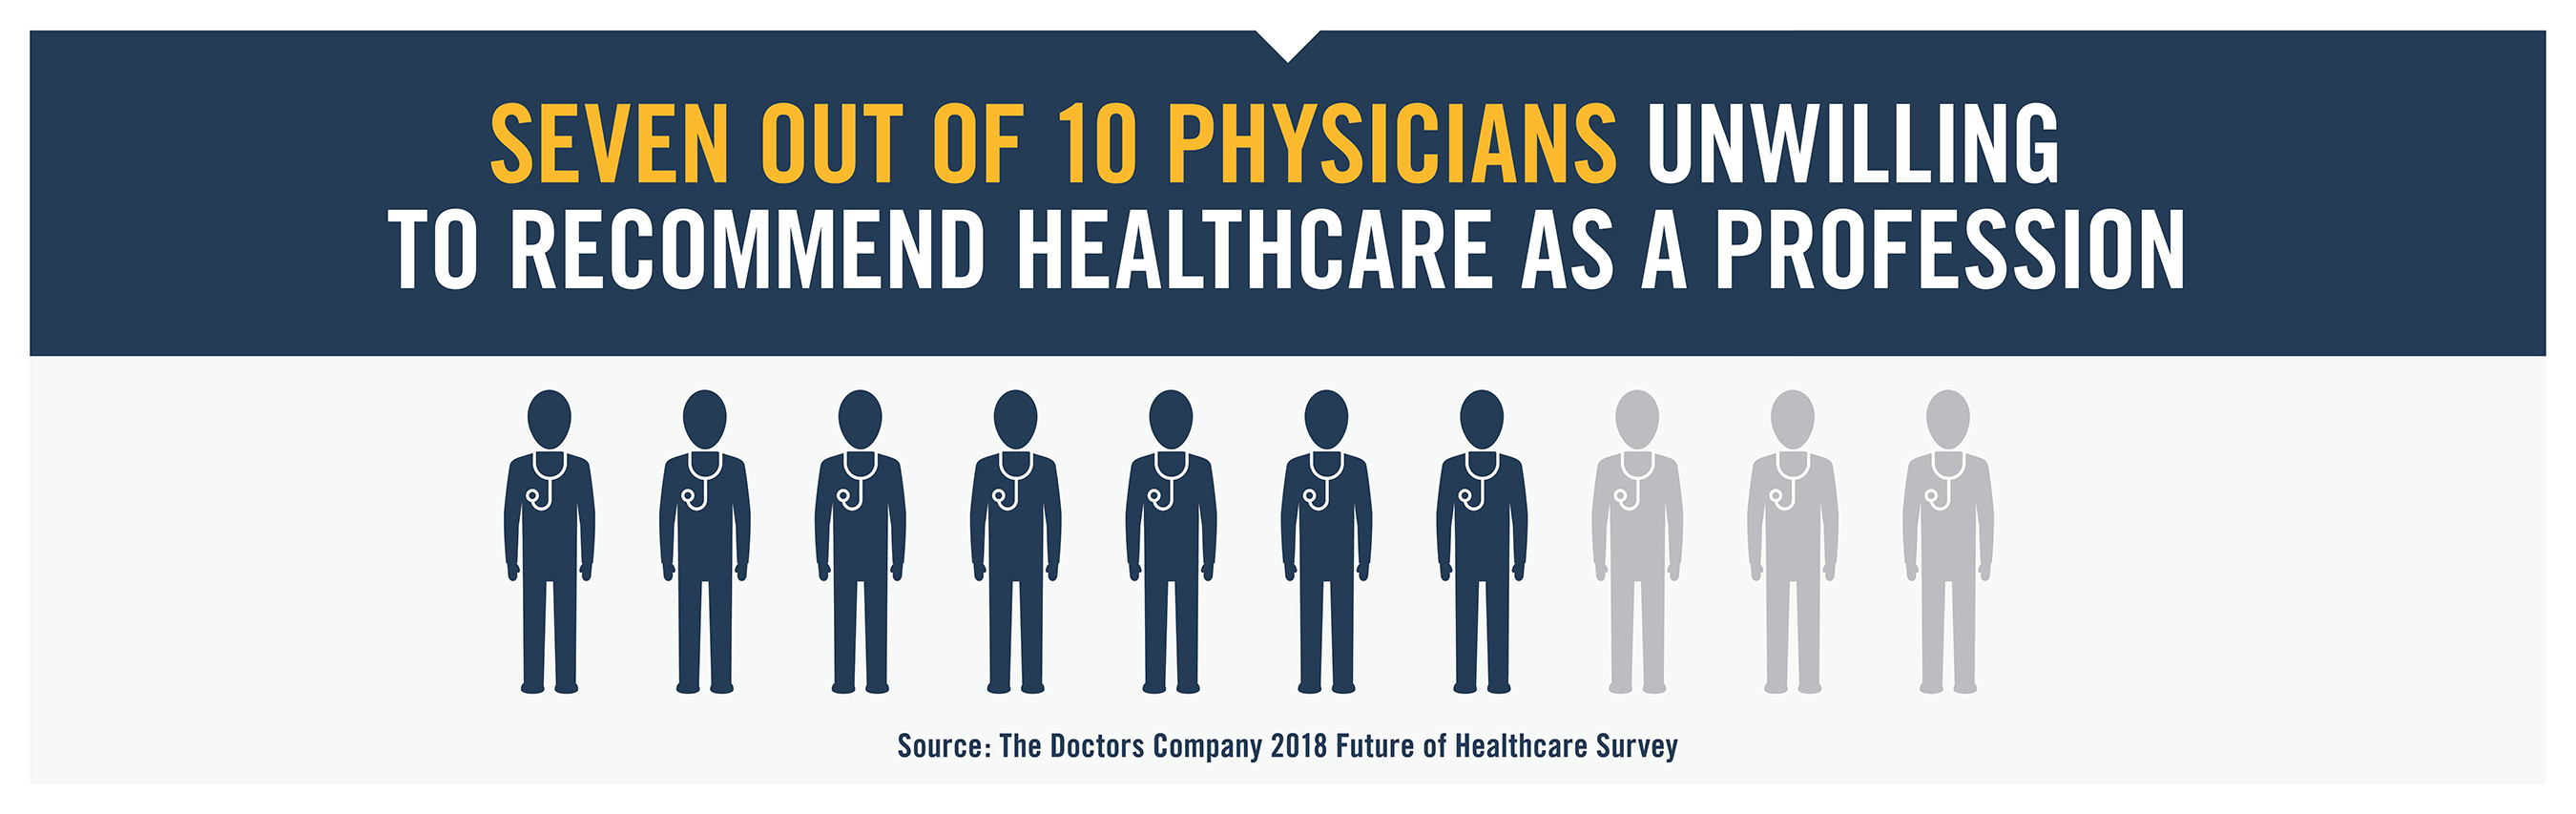 Seven out of 10 physicians are unwilling to recommend their chosen profession